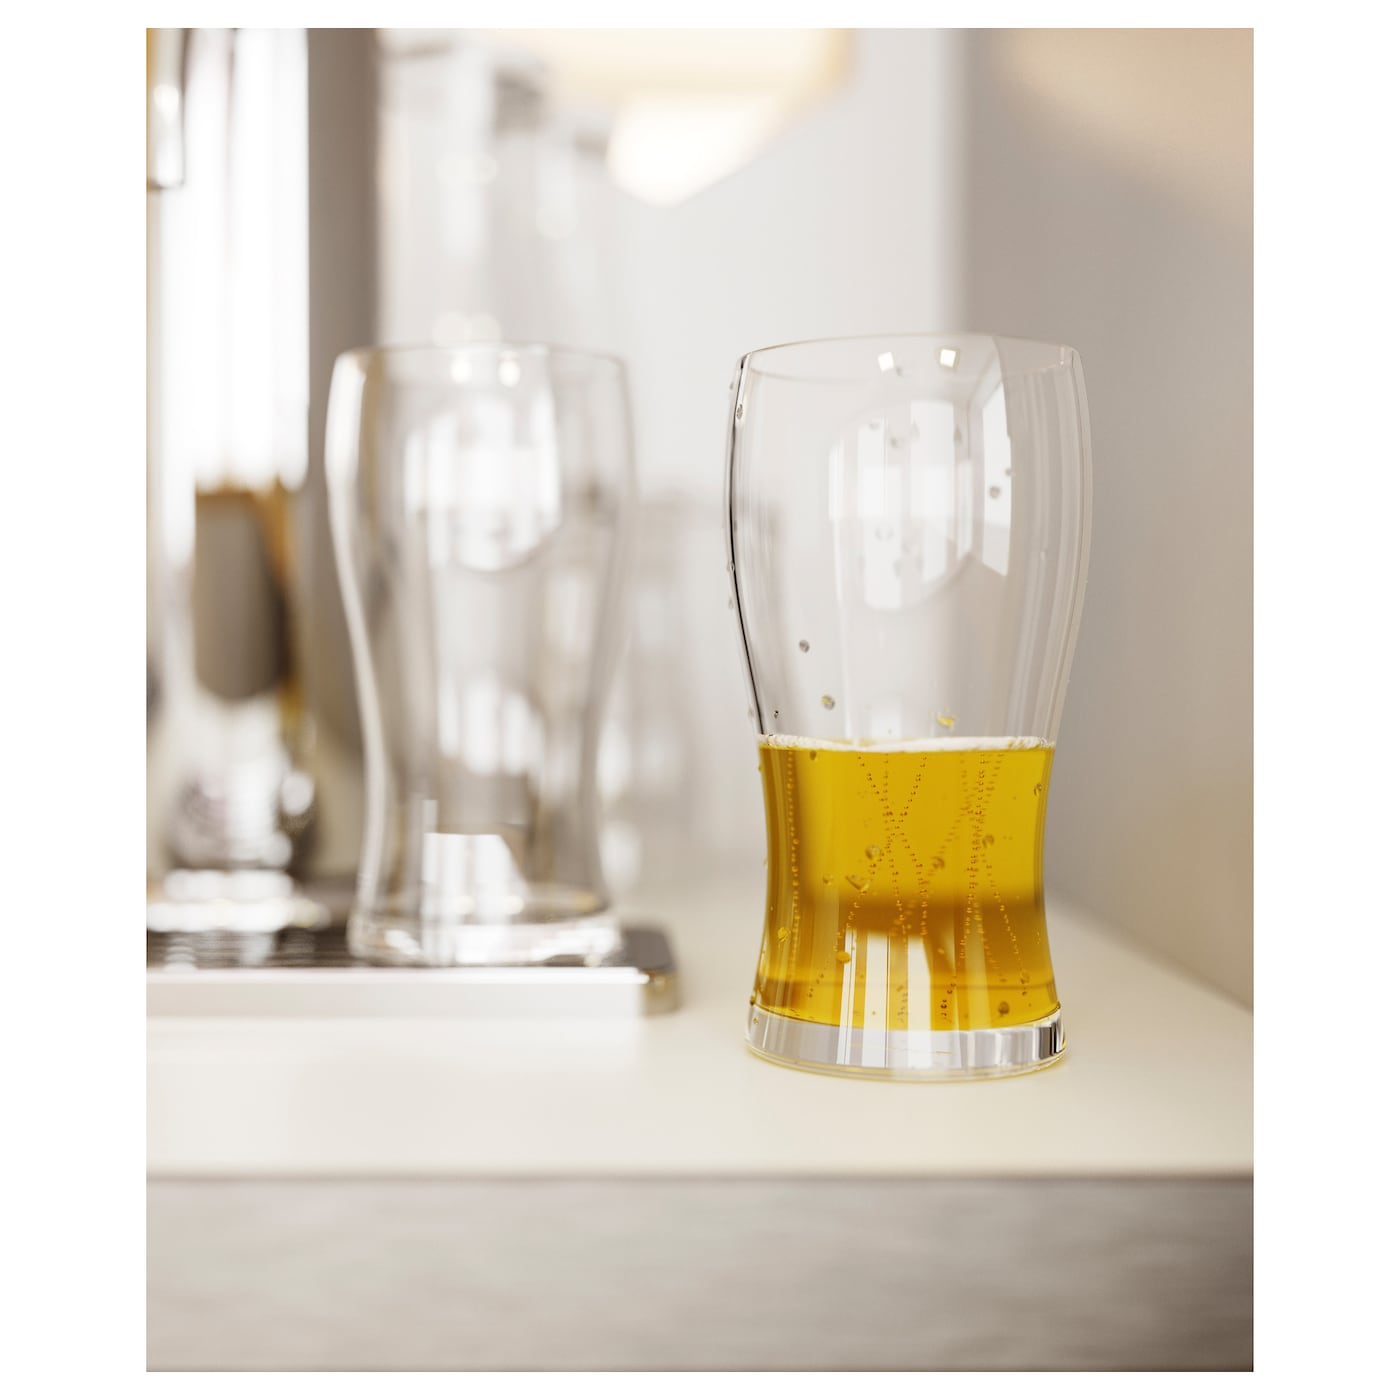 IKEA LODRÄT beer glass The glass is perfect for lager and brings out its aroma.